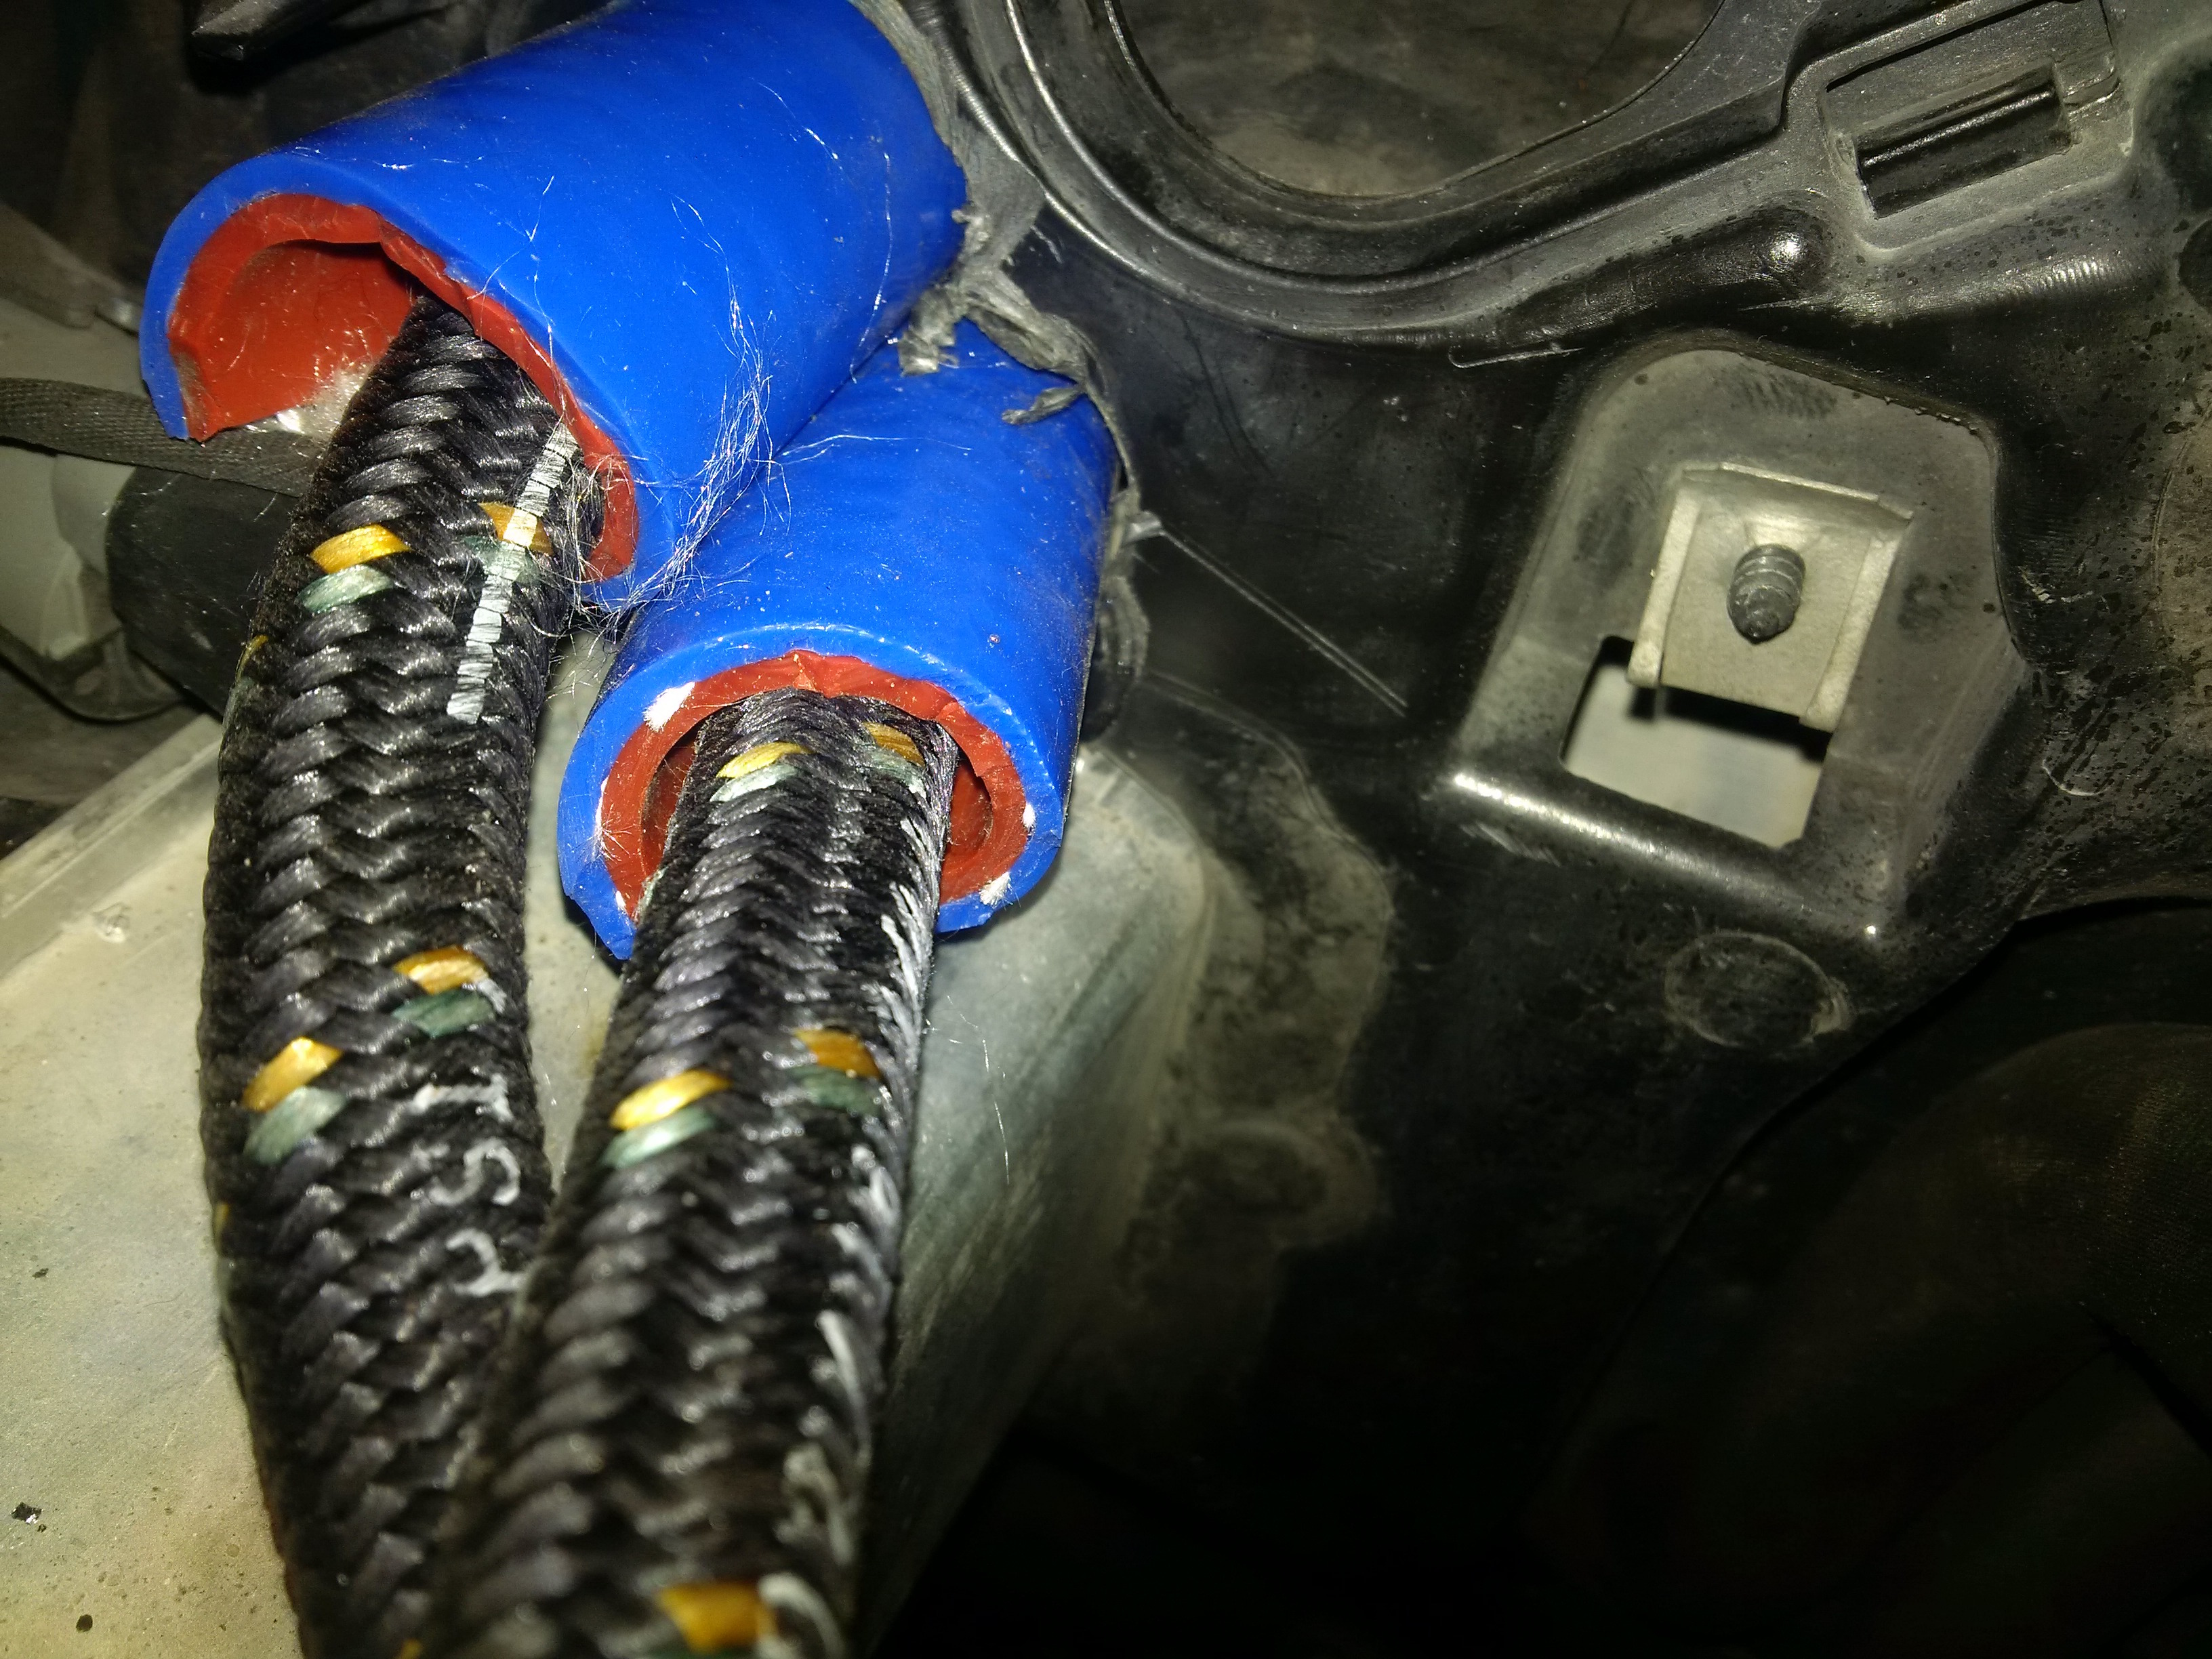 My new (to me) e60 M5: Tire Tracks on the soul-20161007-bypass-oil-2.jpg